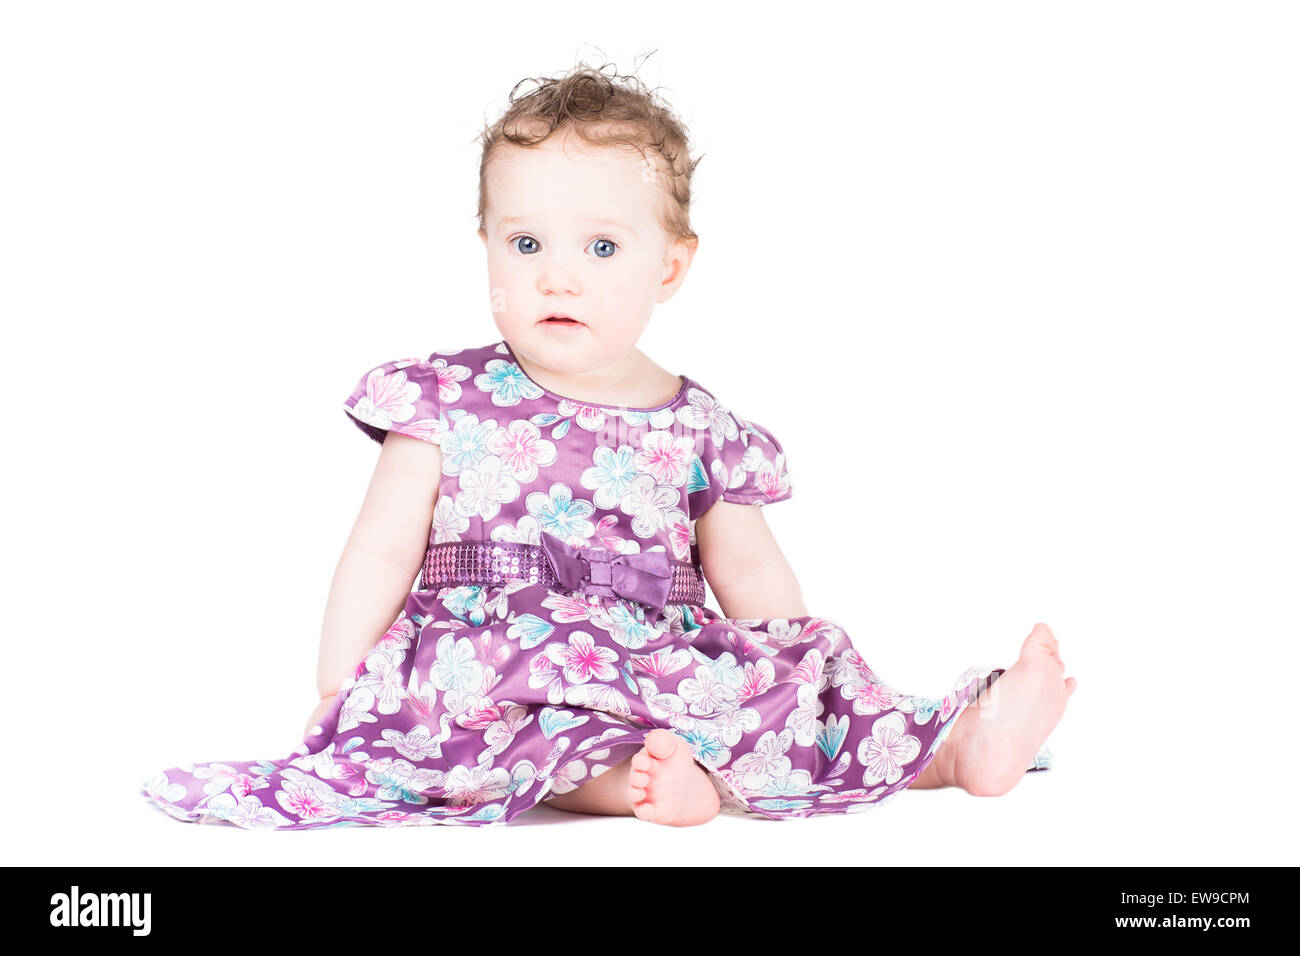 Sweet little baby girl in a festive purple dress, isolated on white - Stock Image